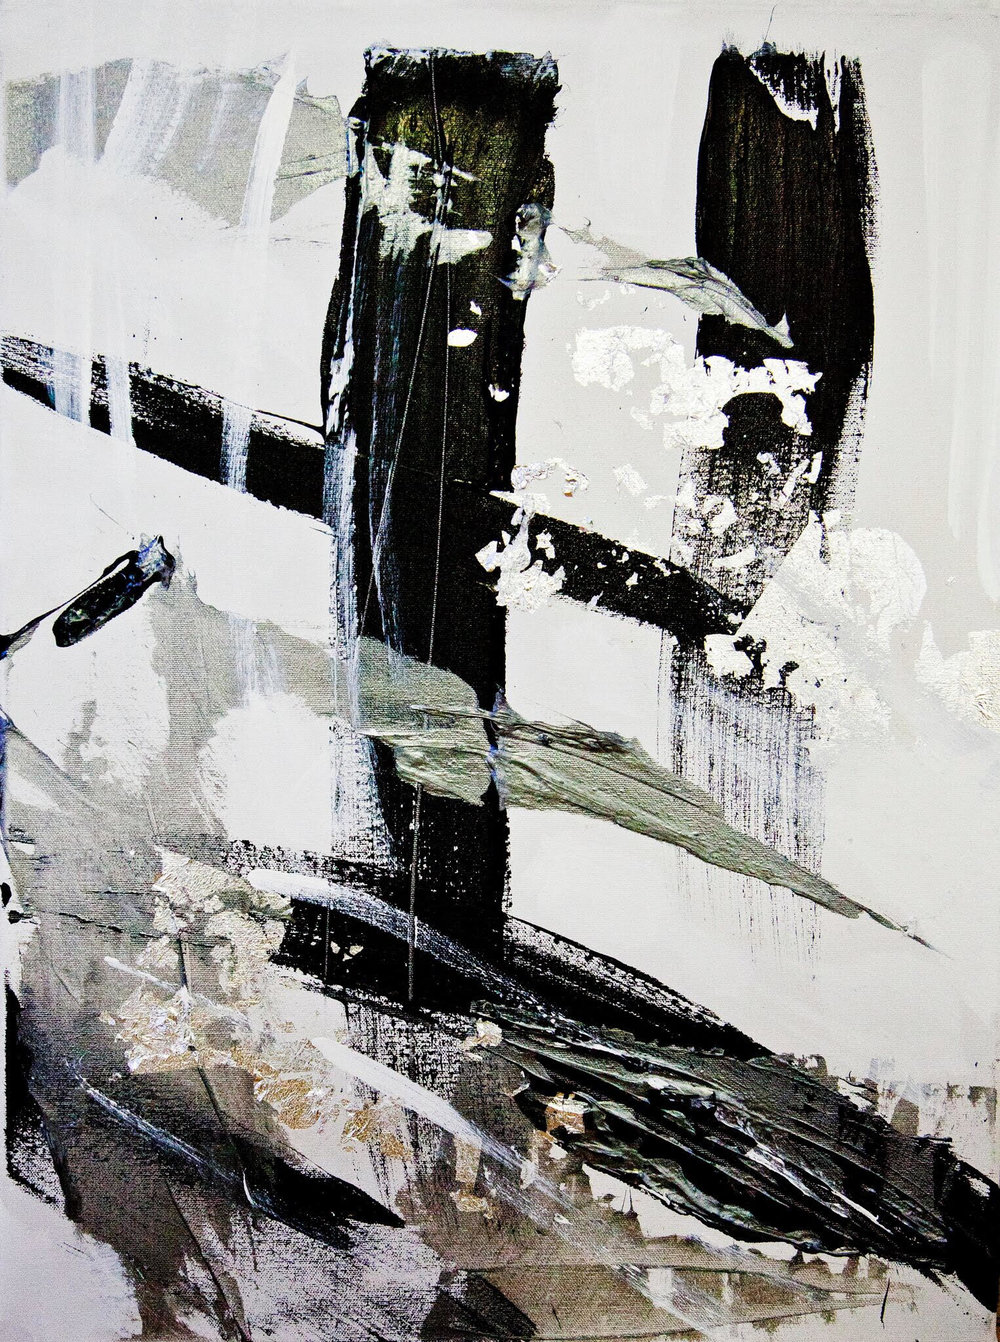 black and white series no. 1 / acrylic on canvas / 30 in. x 20 in.